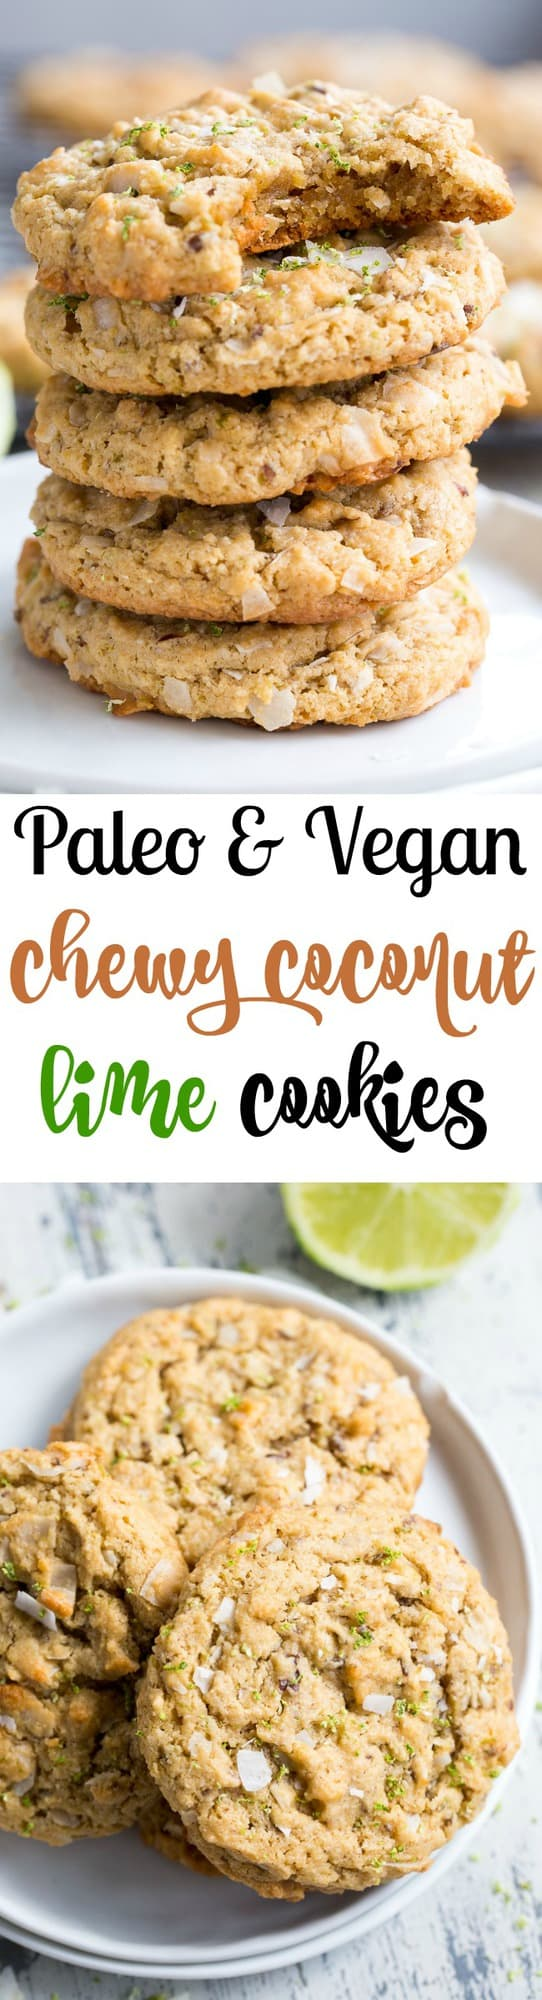 These paleo and vegan lime coconut cookies are packed with flavor, super chewy, sweet and perfect for spring and summer gatherings!  They're family approved, gluten-free, dairy-free, egg free and seriously addicting.